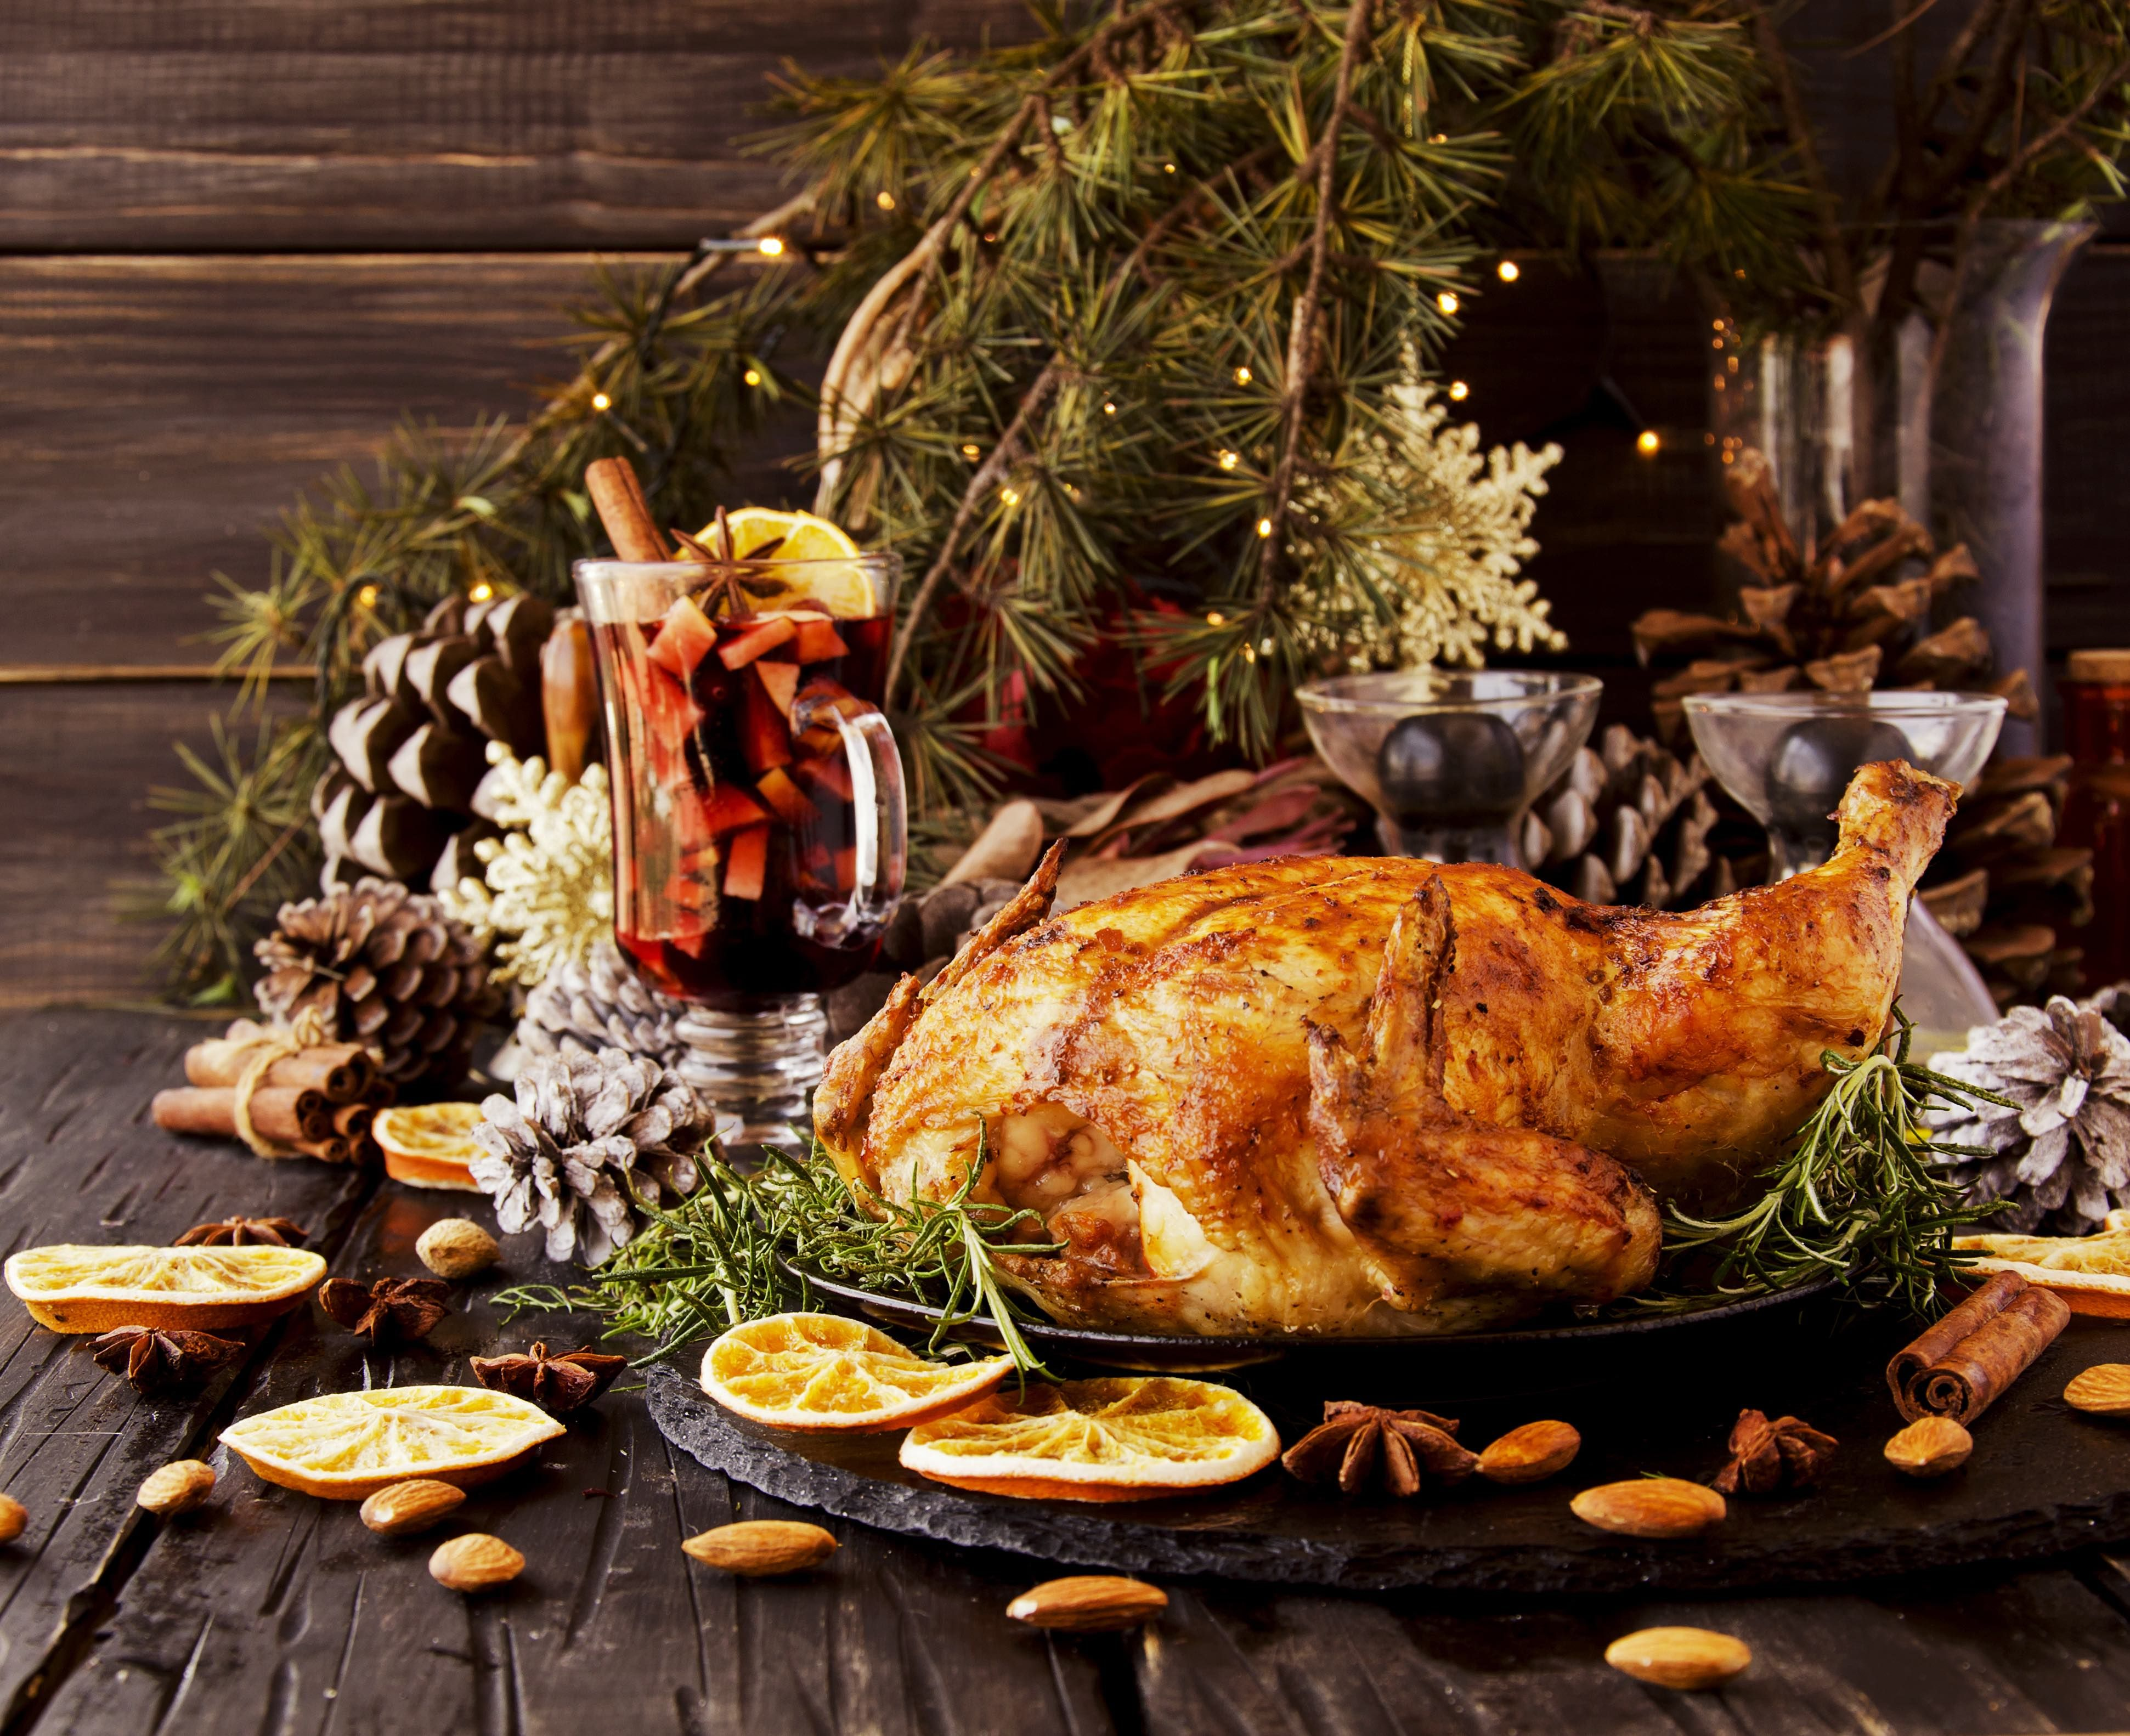 Offering Free Christmas Dinners